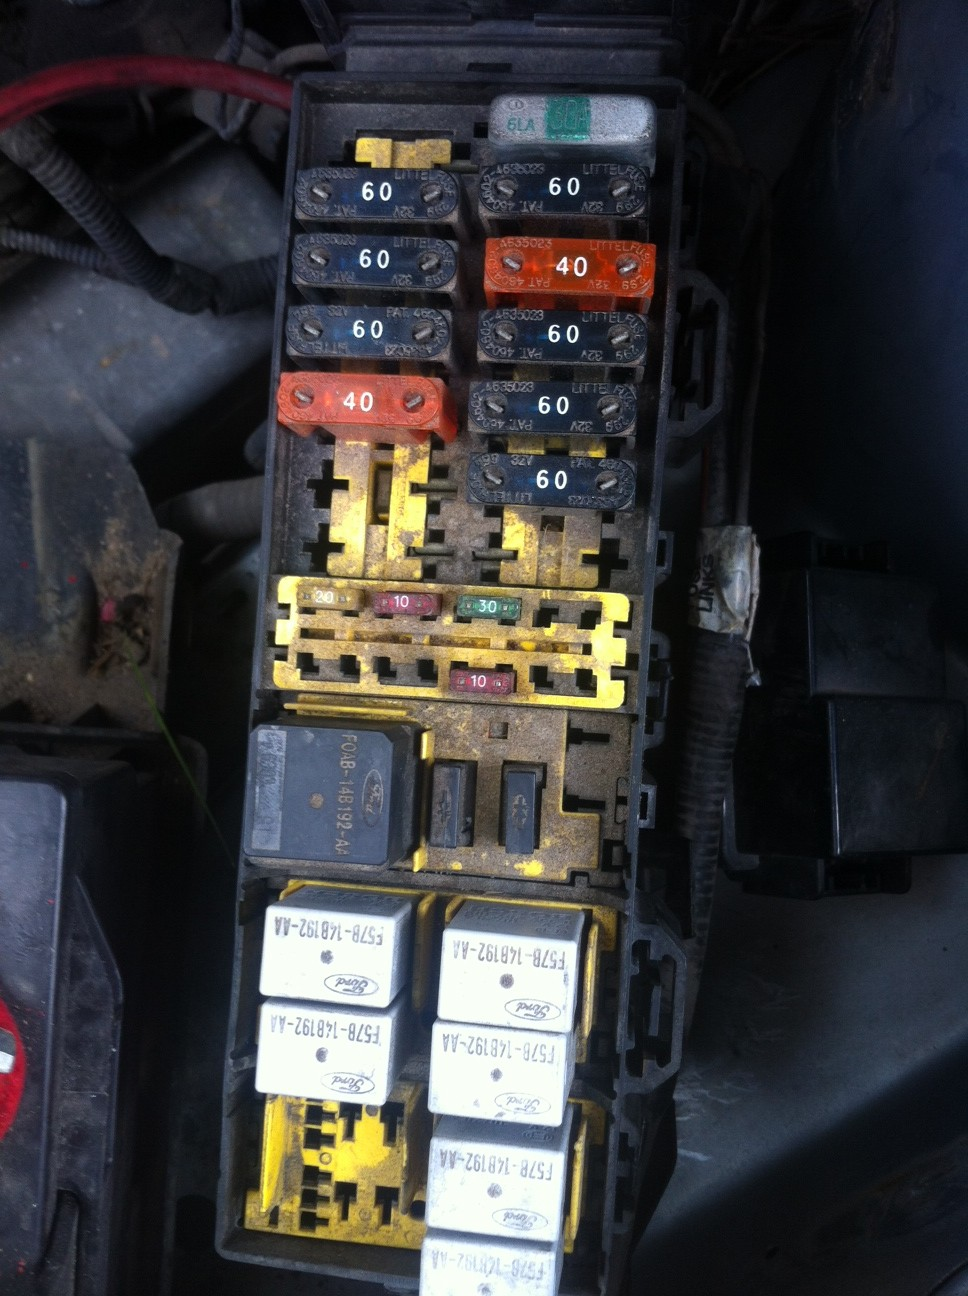 1998 Ford Windstar Engine Fuse Box House Wiring Diagram Symbols 99 12vdc Problem The Van Acts Like There Is No Rh Justanswer Com Panel Ranger